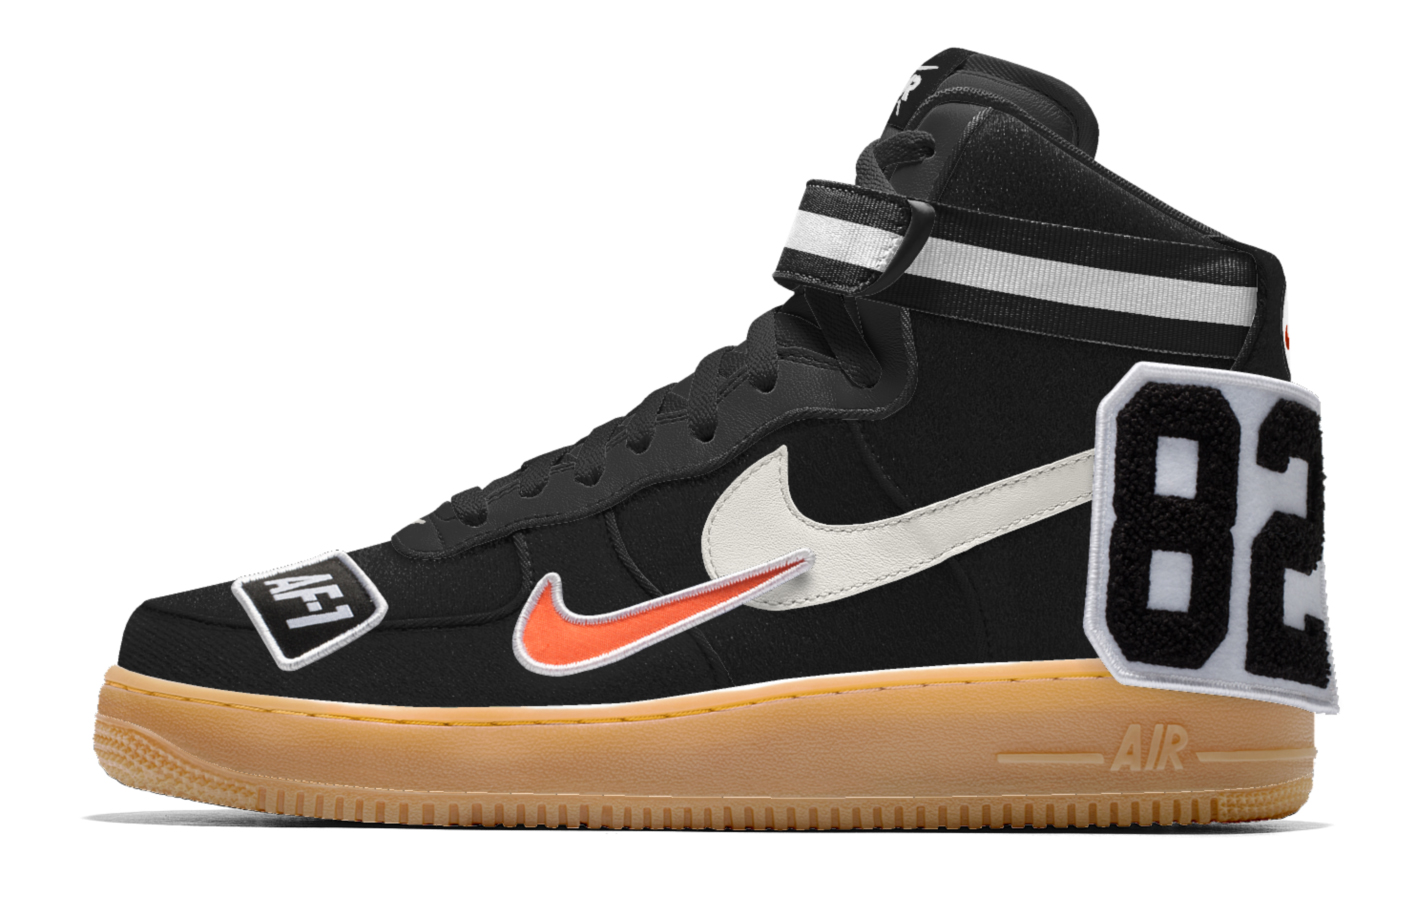 nike-air-force-1-high-patch-march-madness-nikeid-release-date-where-to-buy